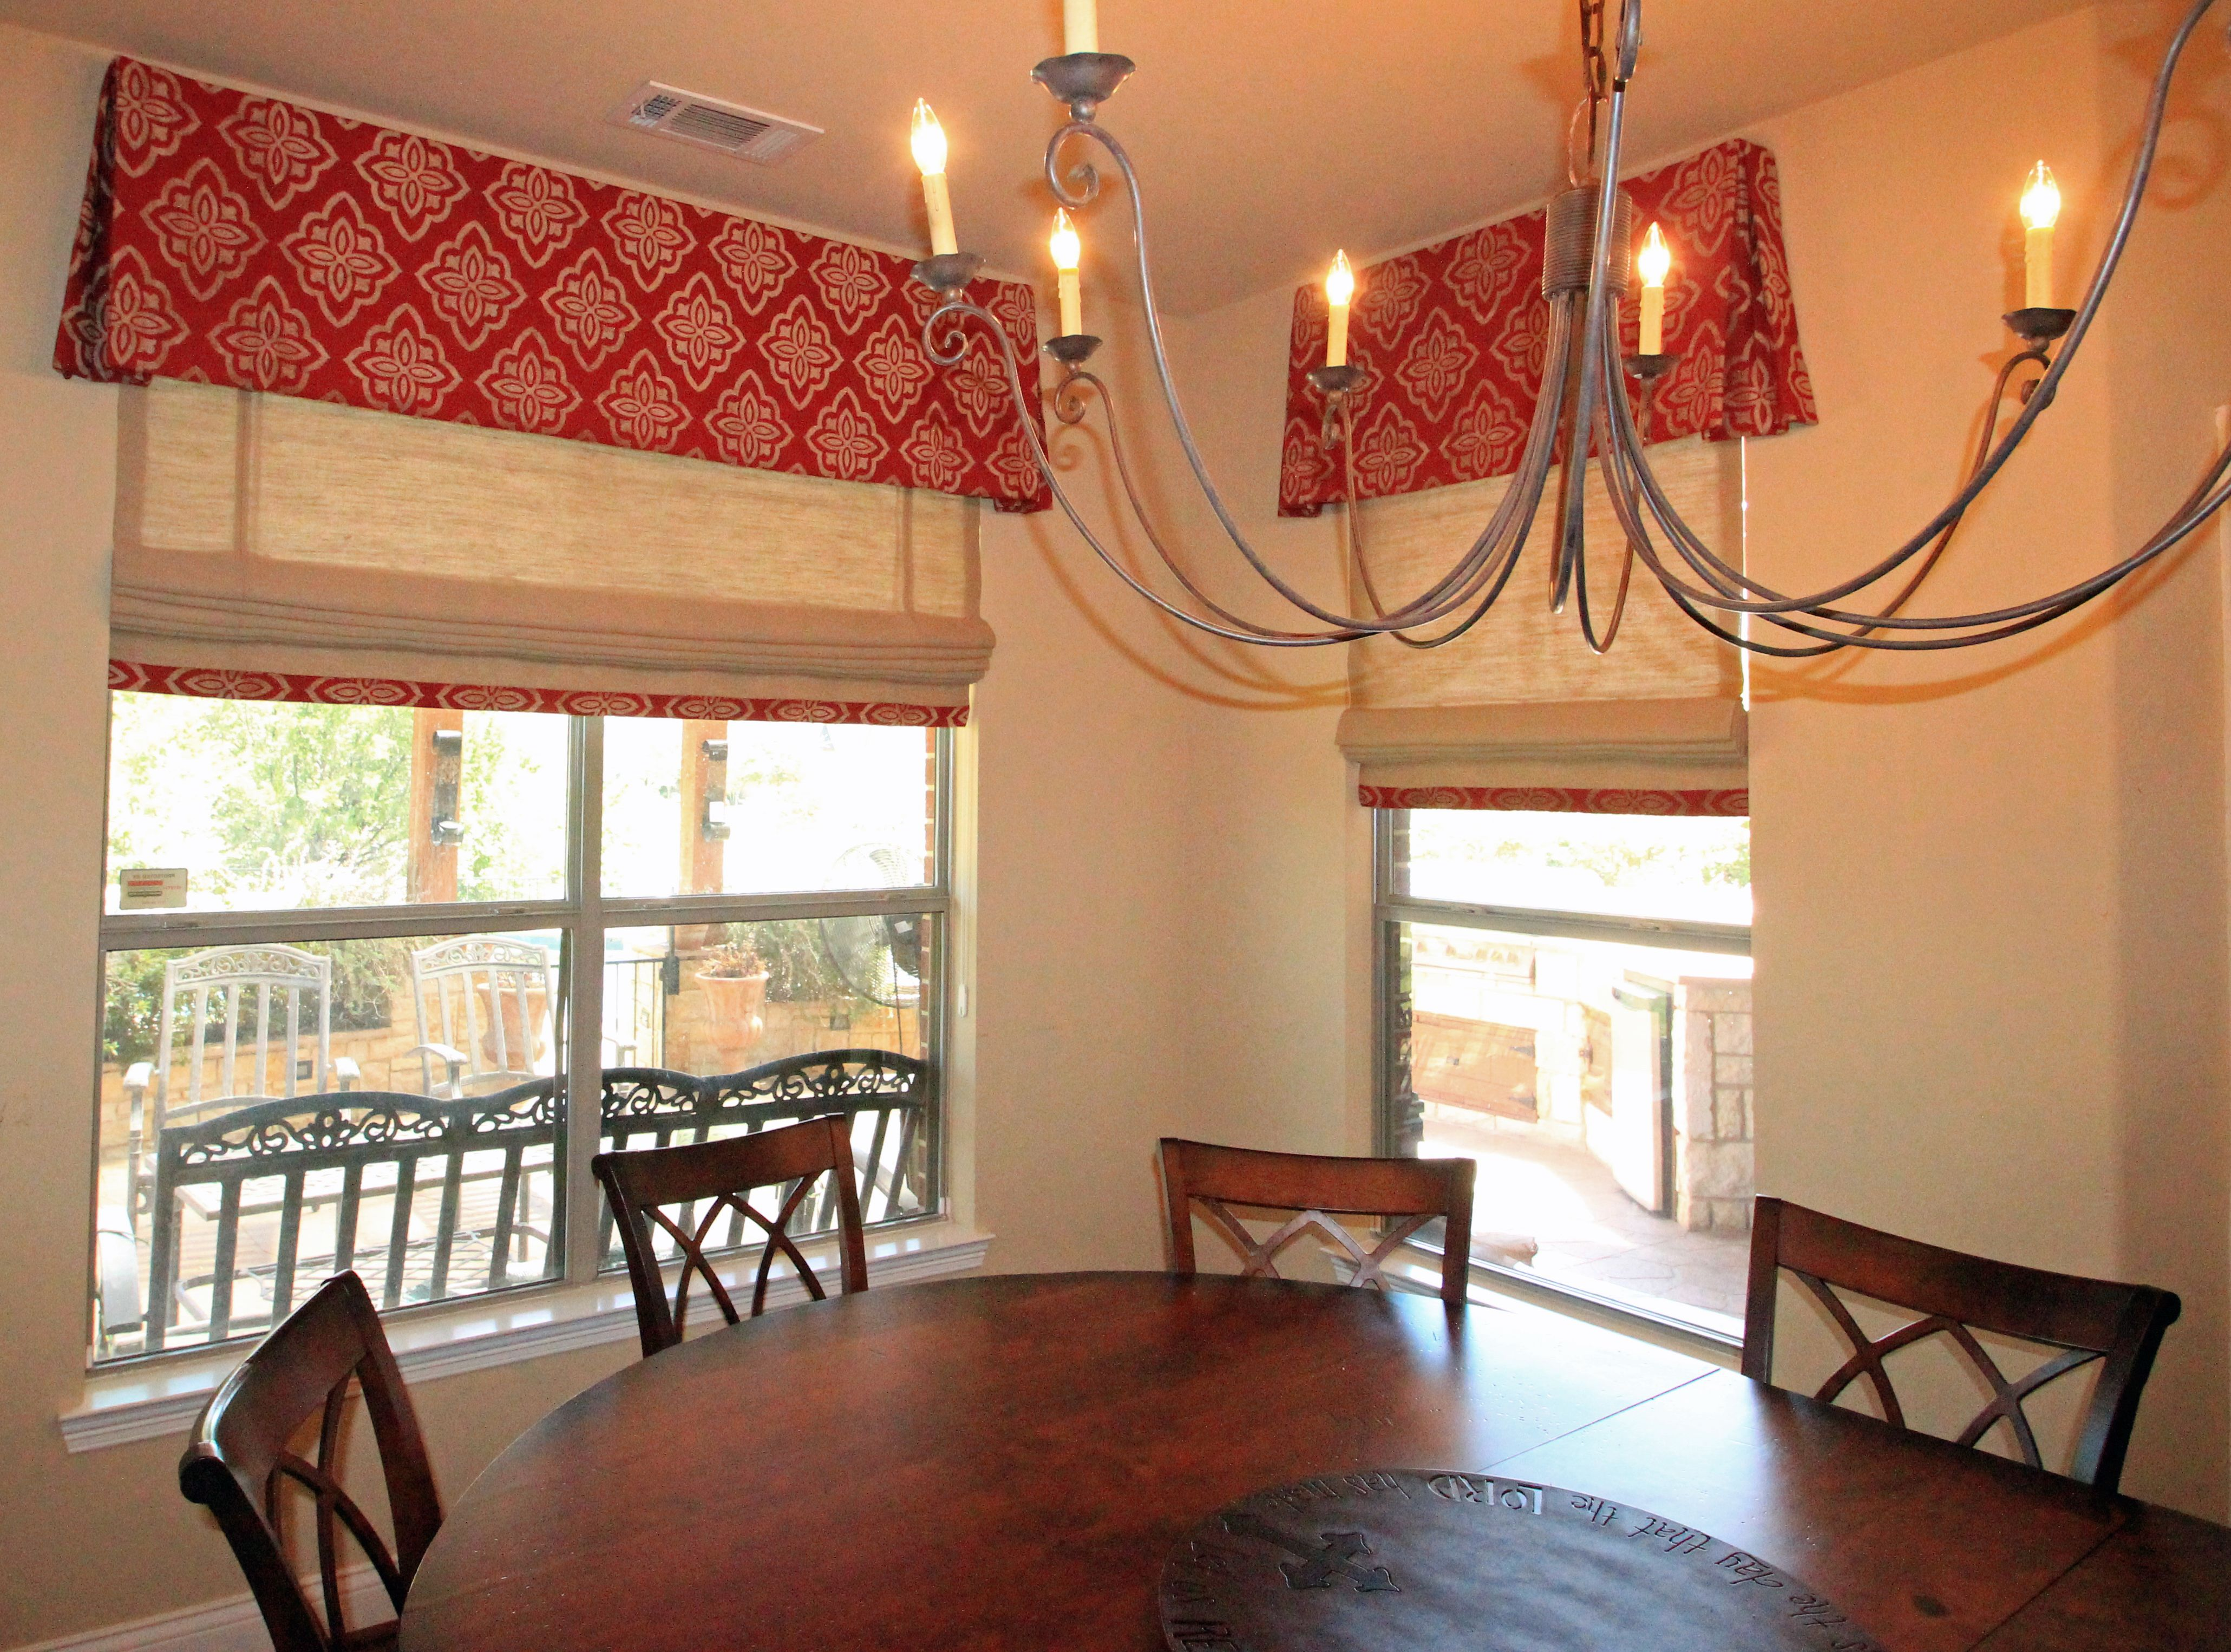 Breakfast Room Valances And Burlap Roman Shades  Dorothy Greenlee Stunning Dining Room Valances Inspiration Design